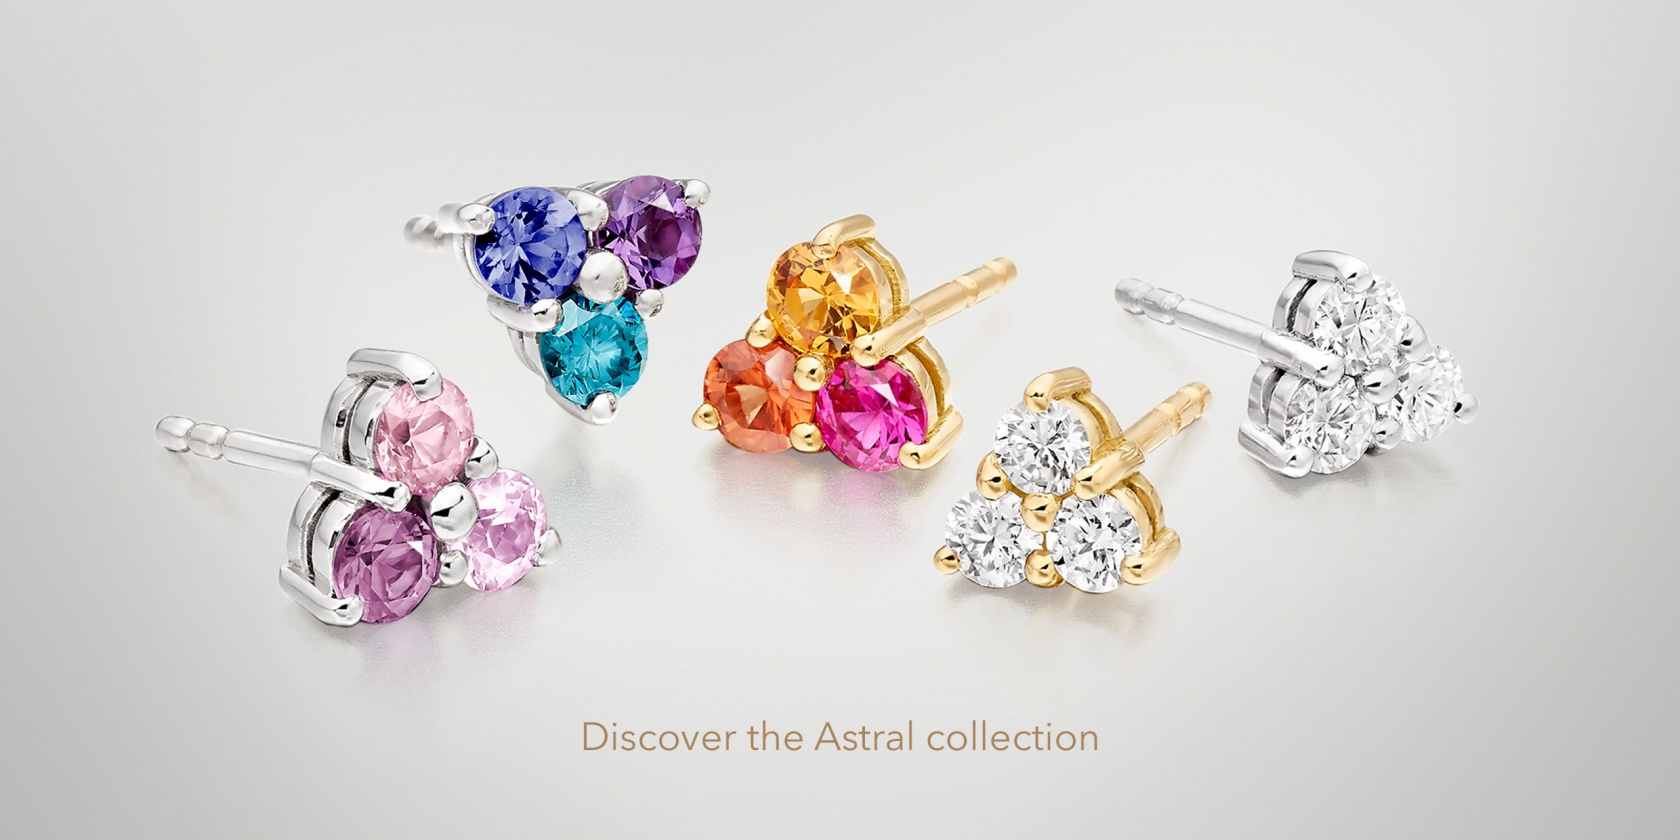 Shop the Astral collection